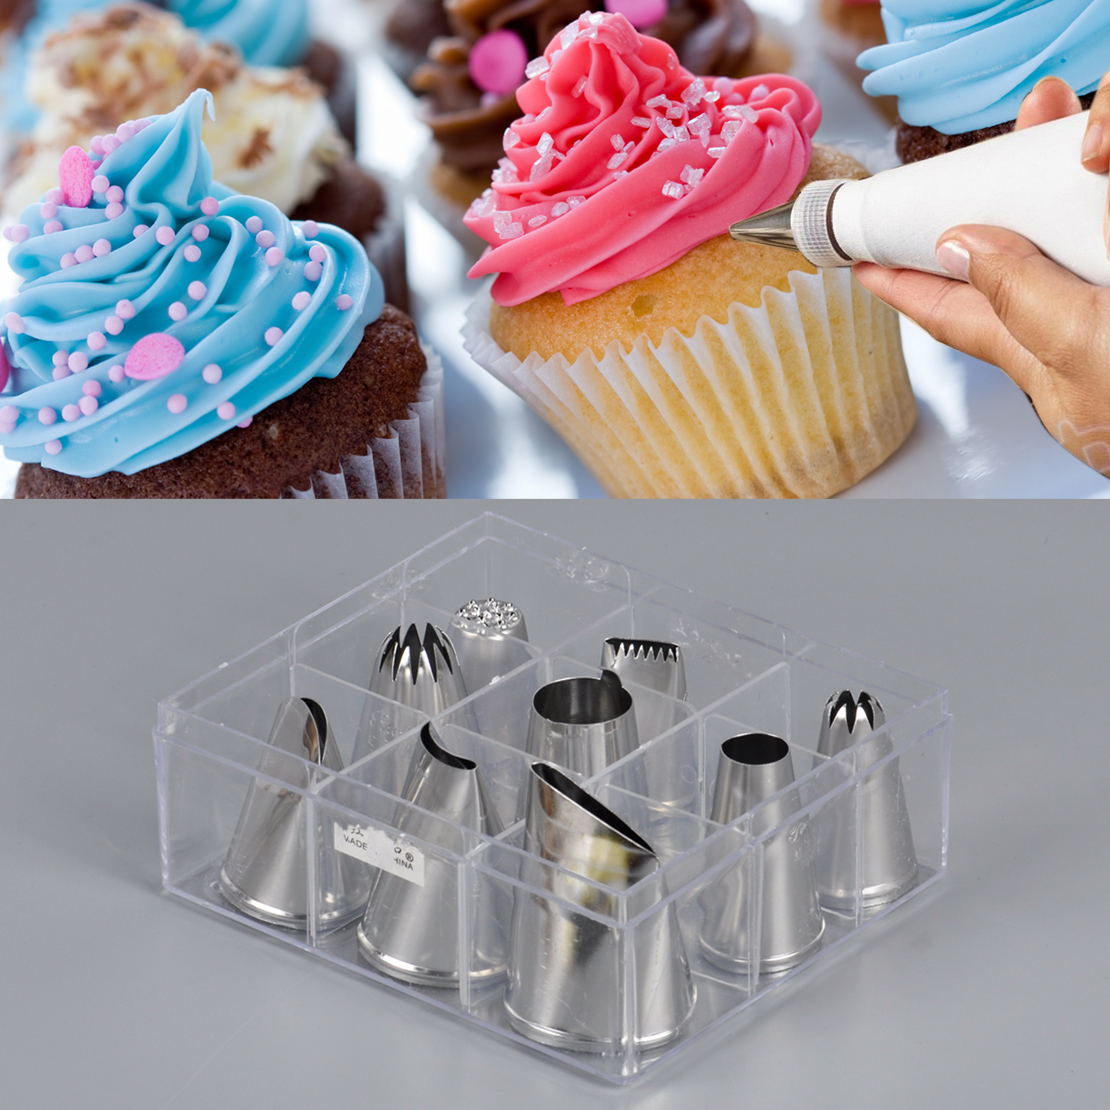 9 pieces extra large cupcake icing piping nozzles tips box ...